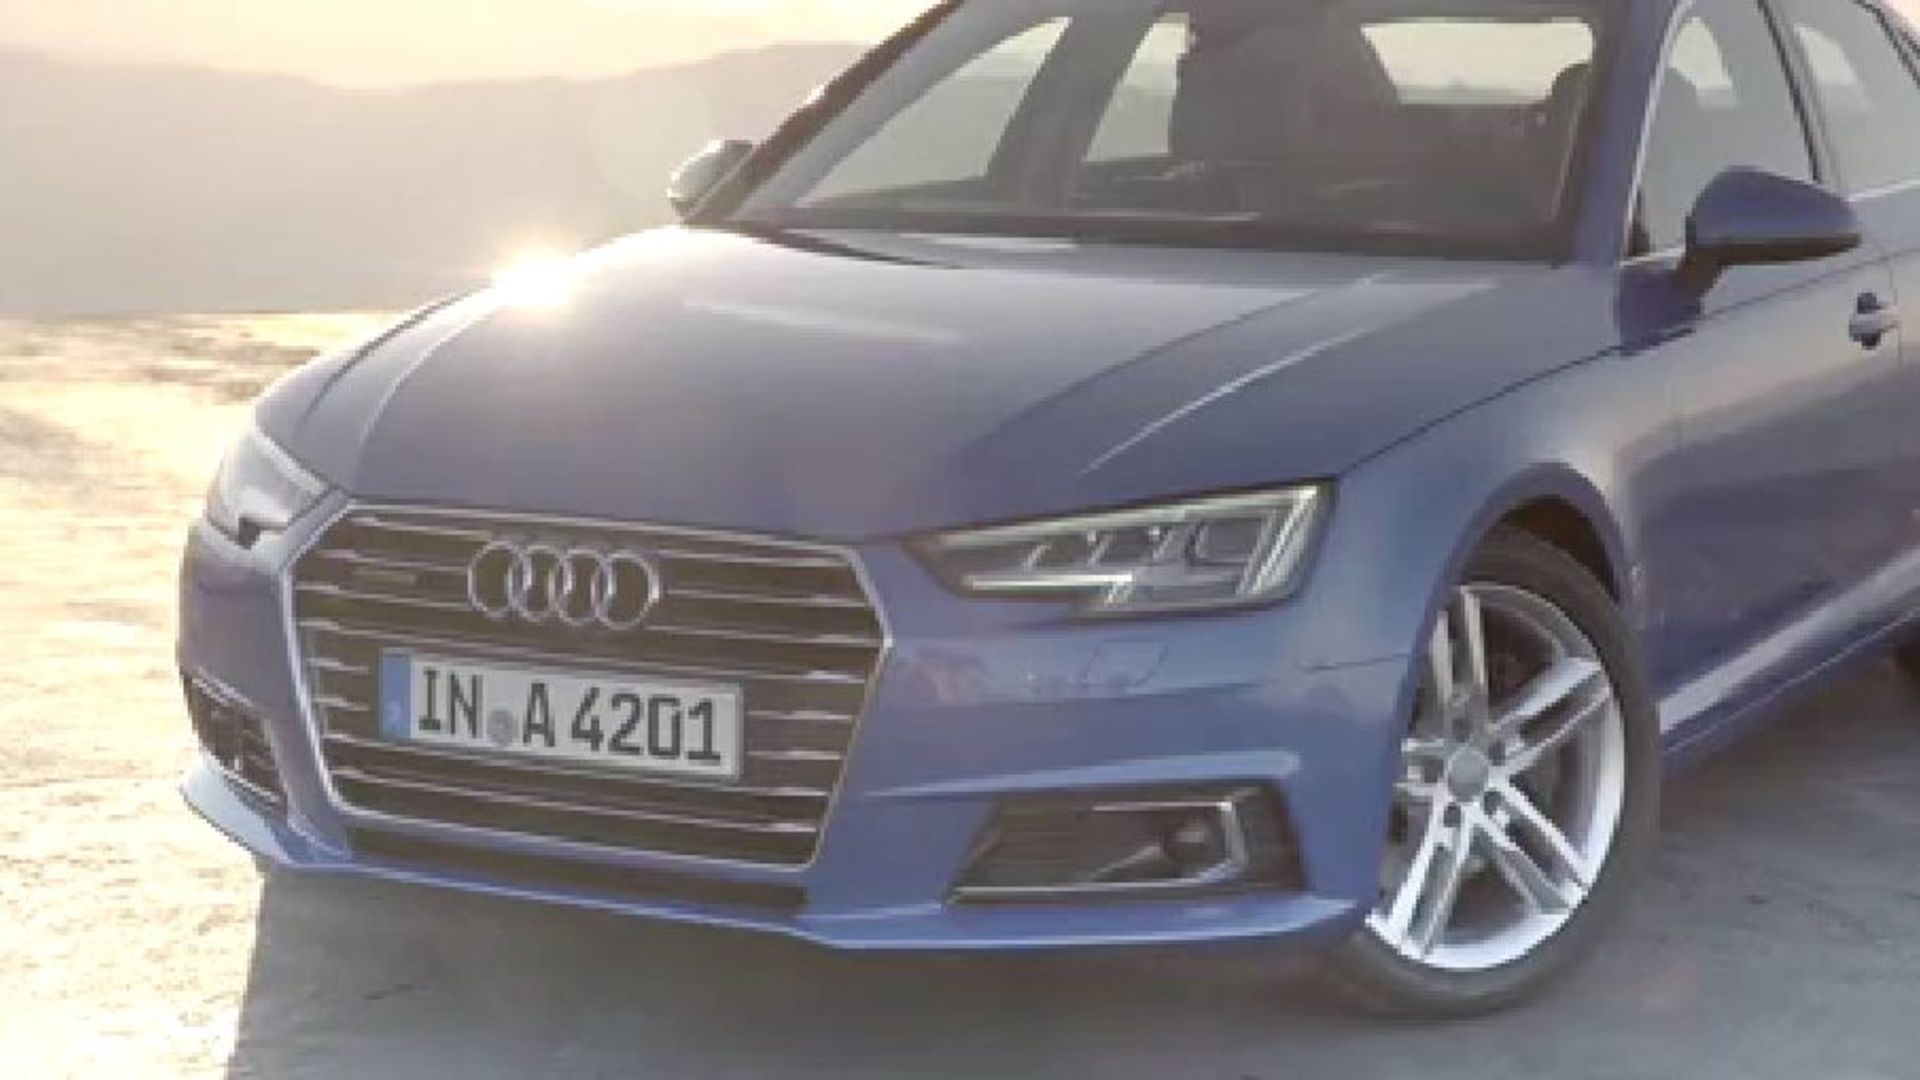 Audi A4 (2015) Emotion Trailer - Extended